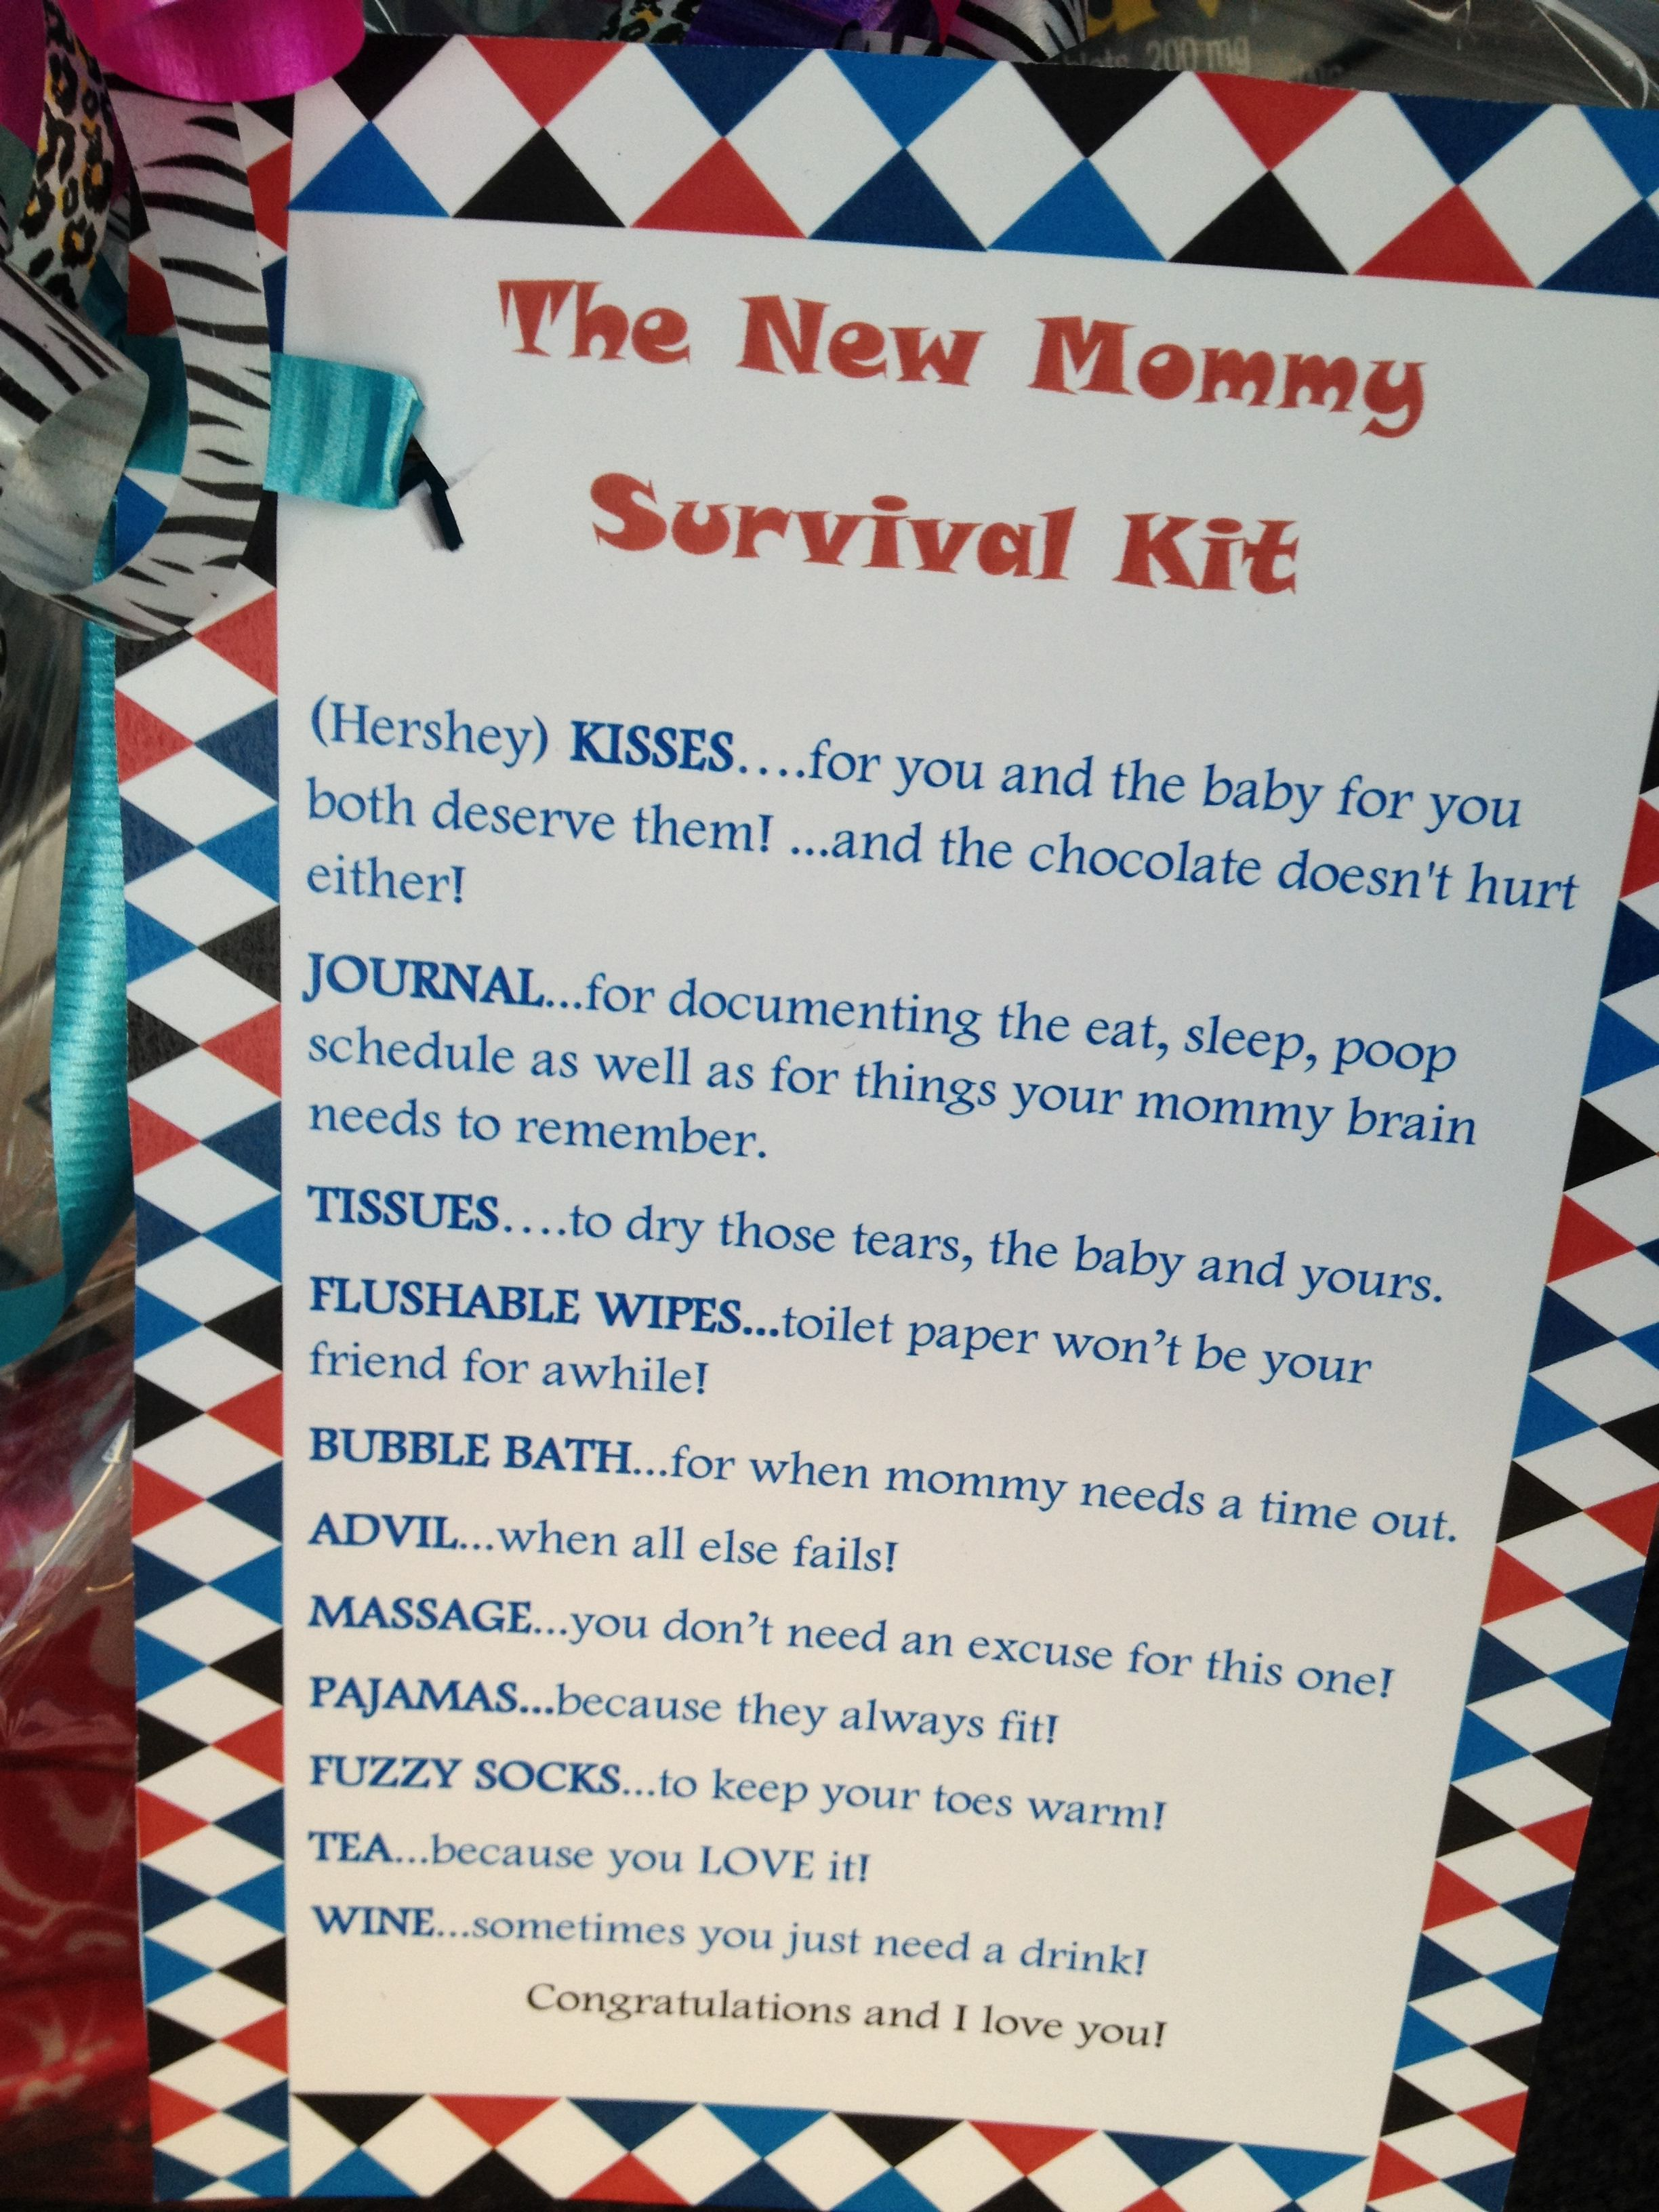 New Mommy Survival Kit Perfect For A Baby Shower Type Out The Card